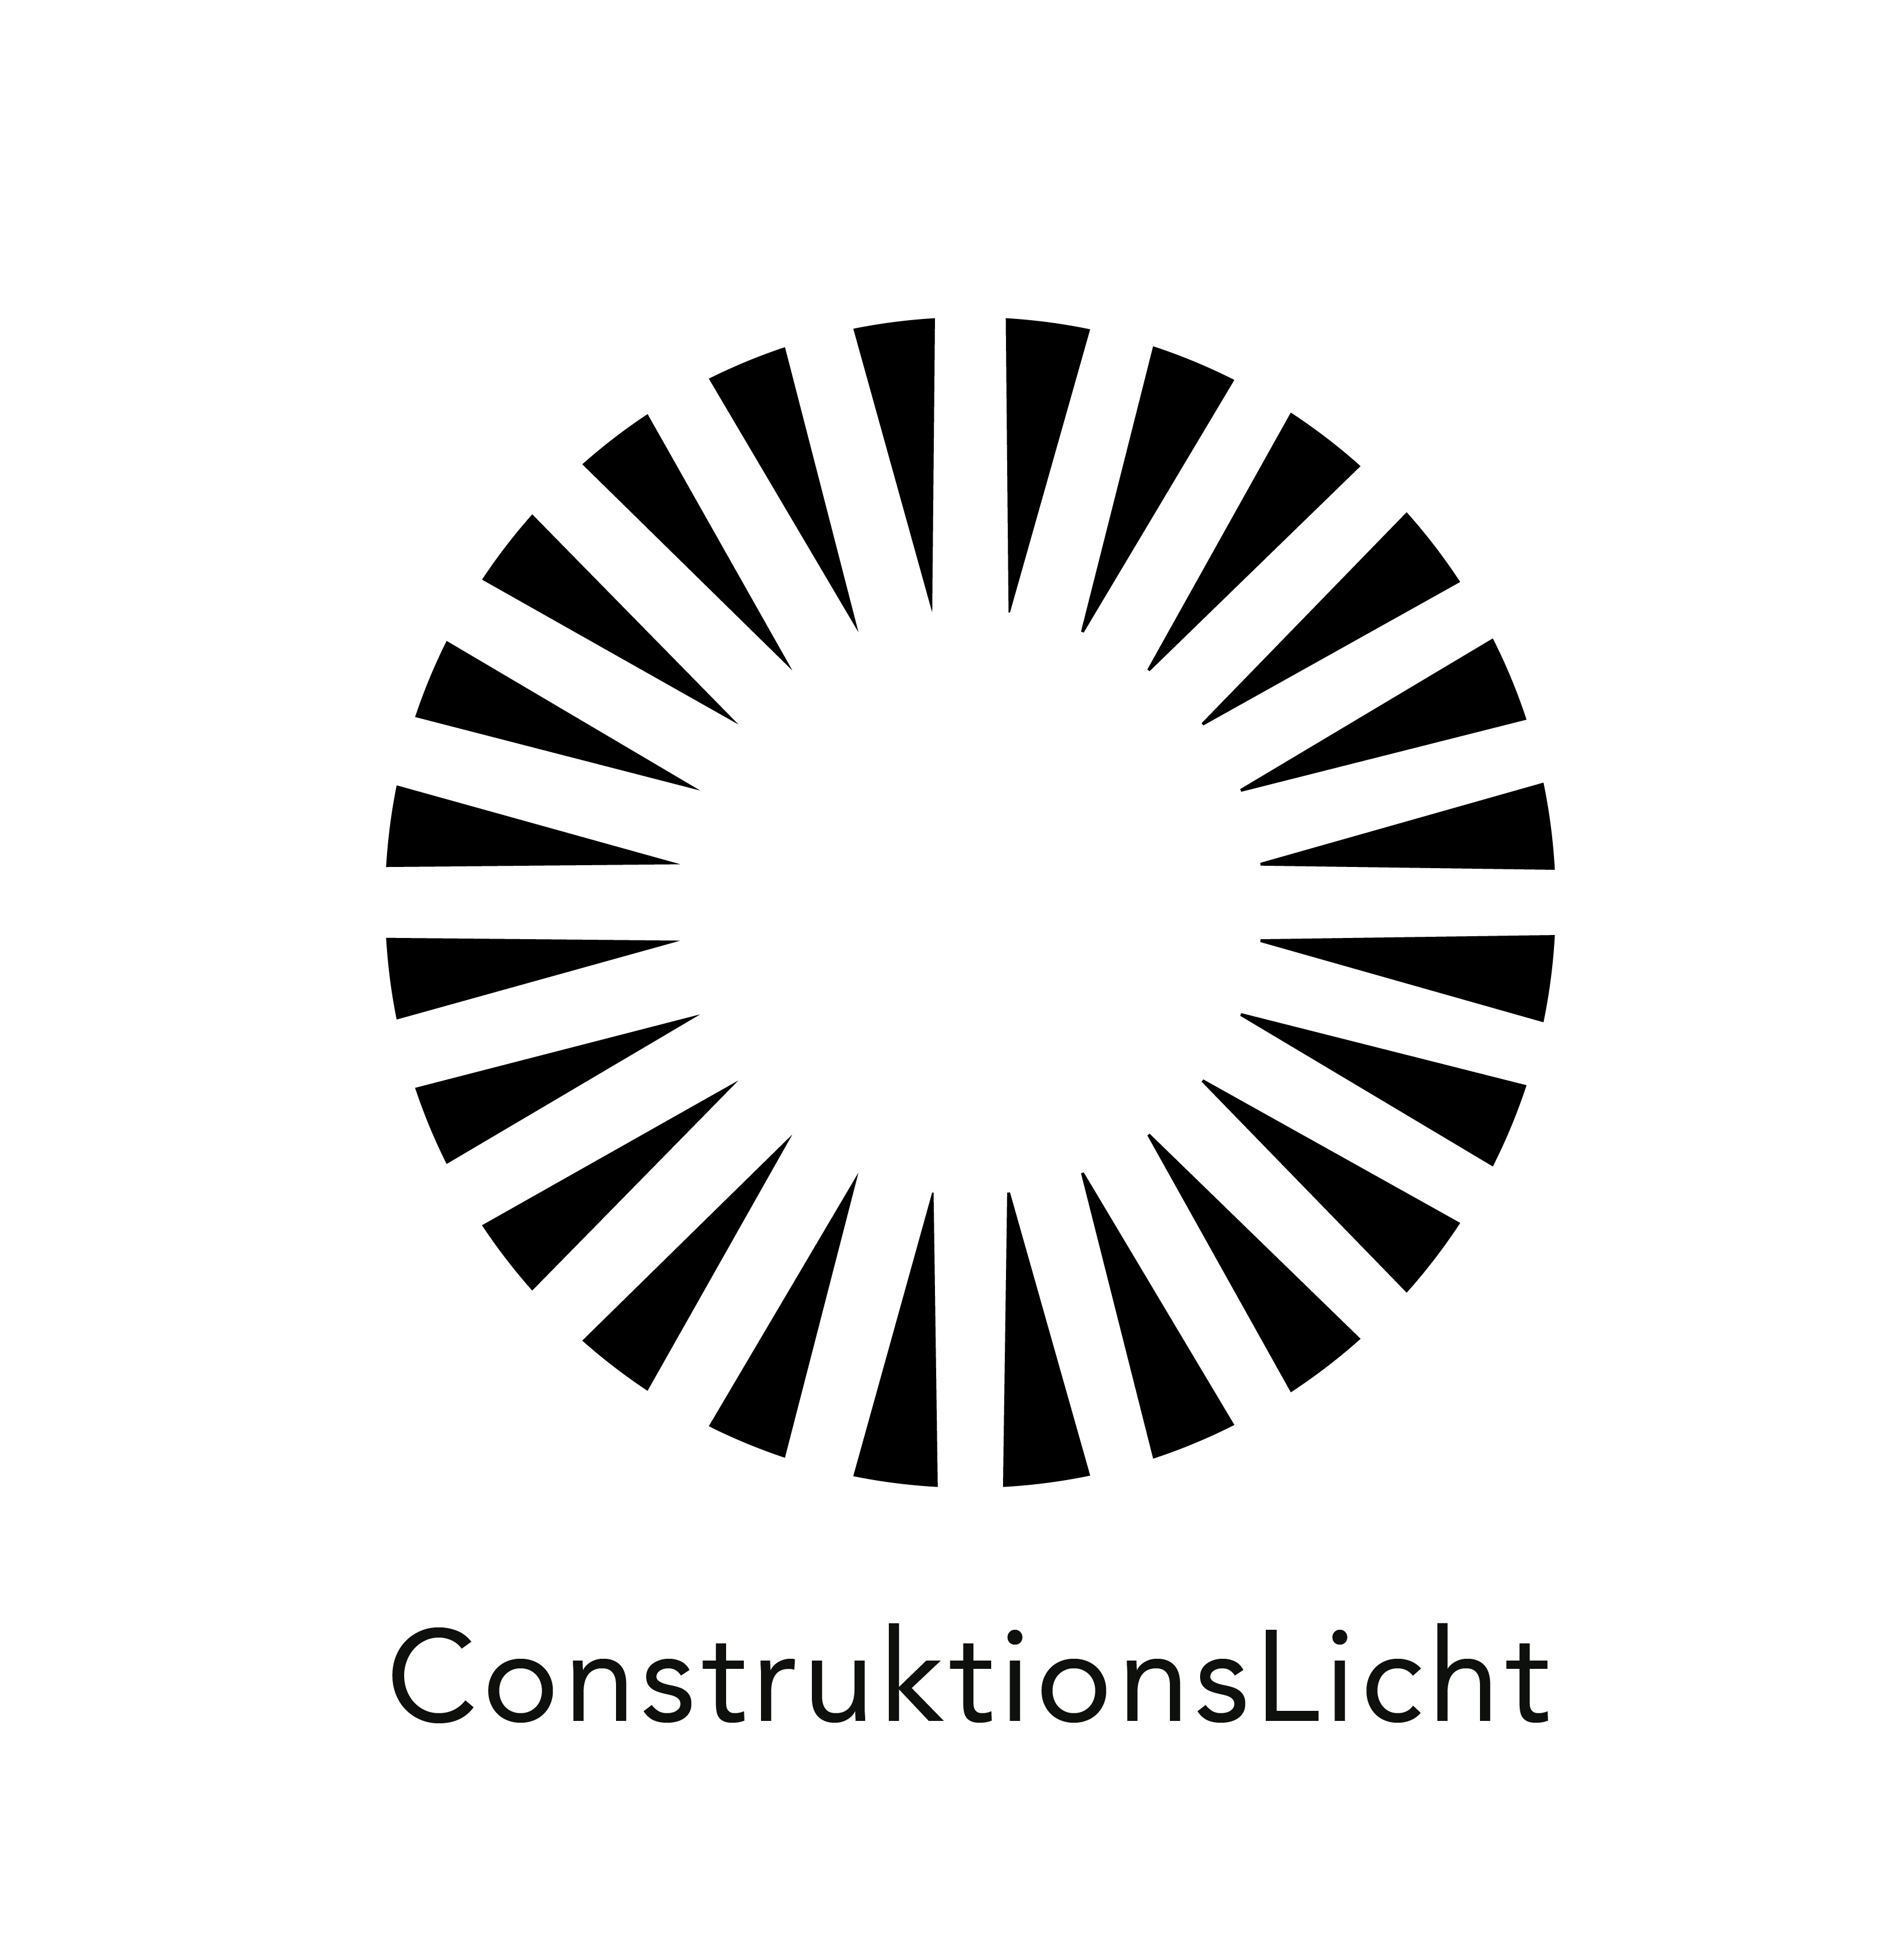 ConstruktionsLicht, ON Grafik, wibberenz' design